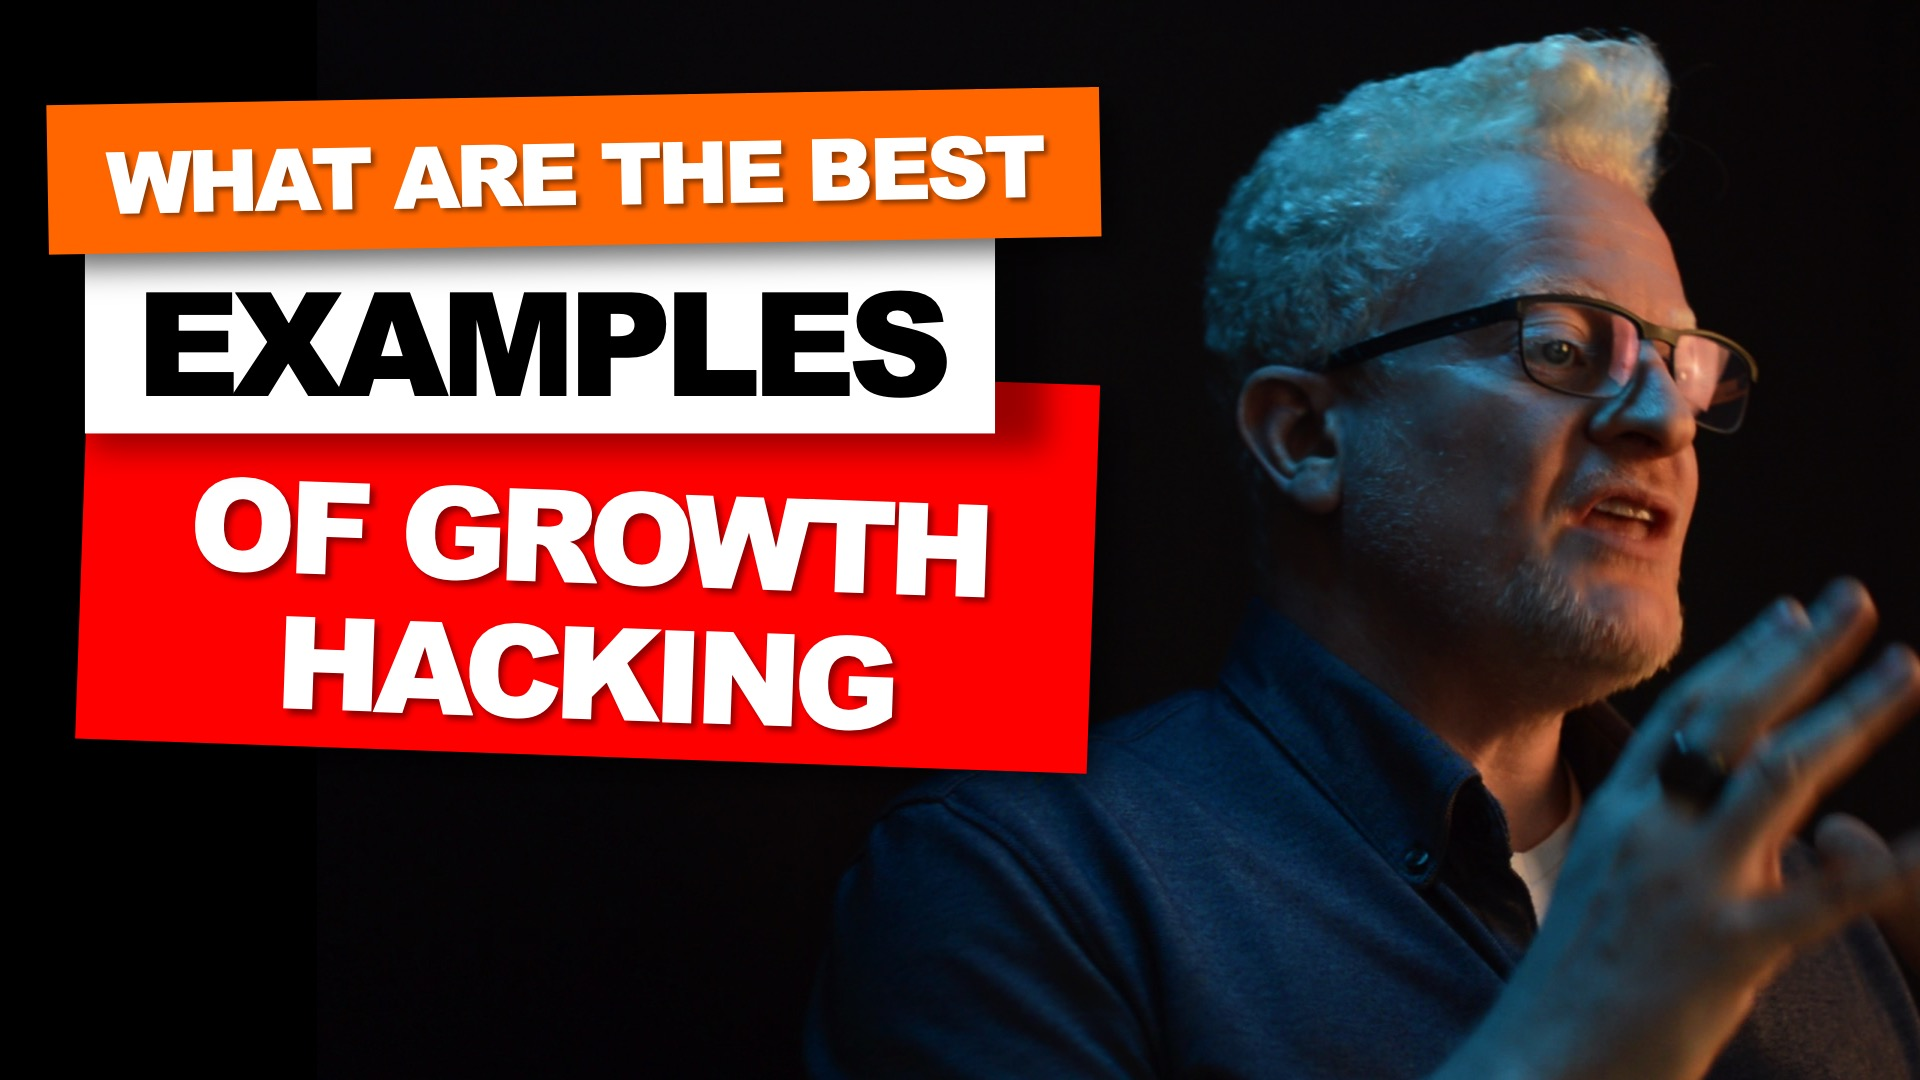 Examples of growth hacking